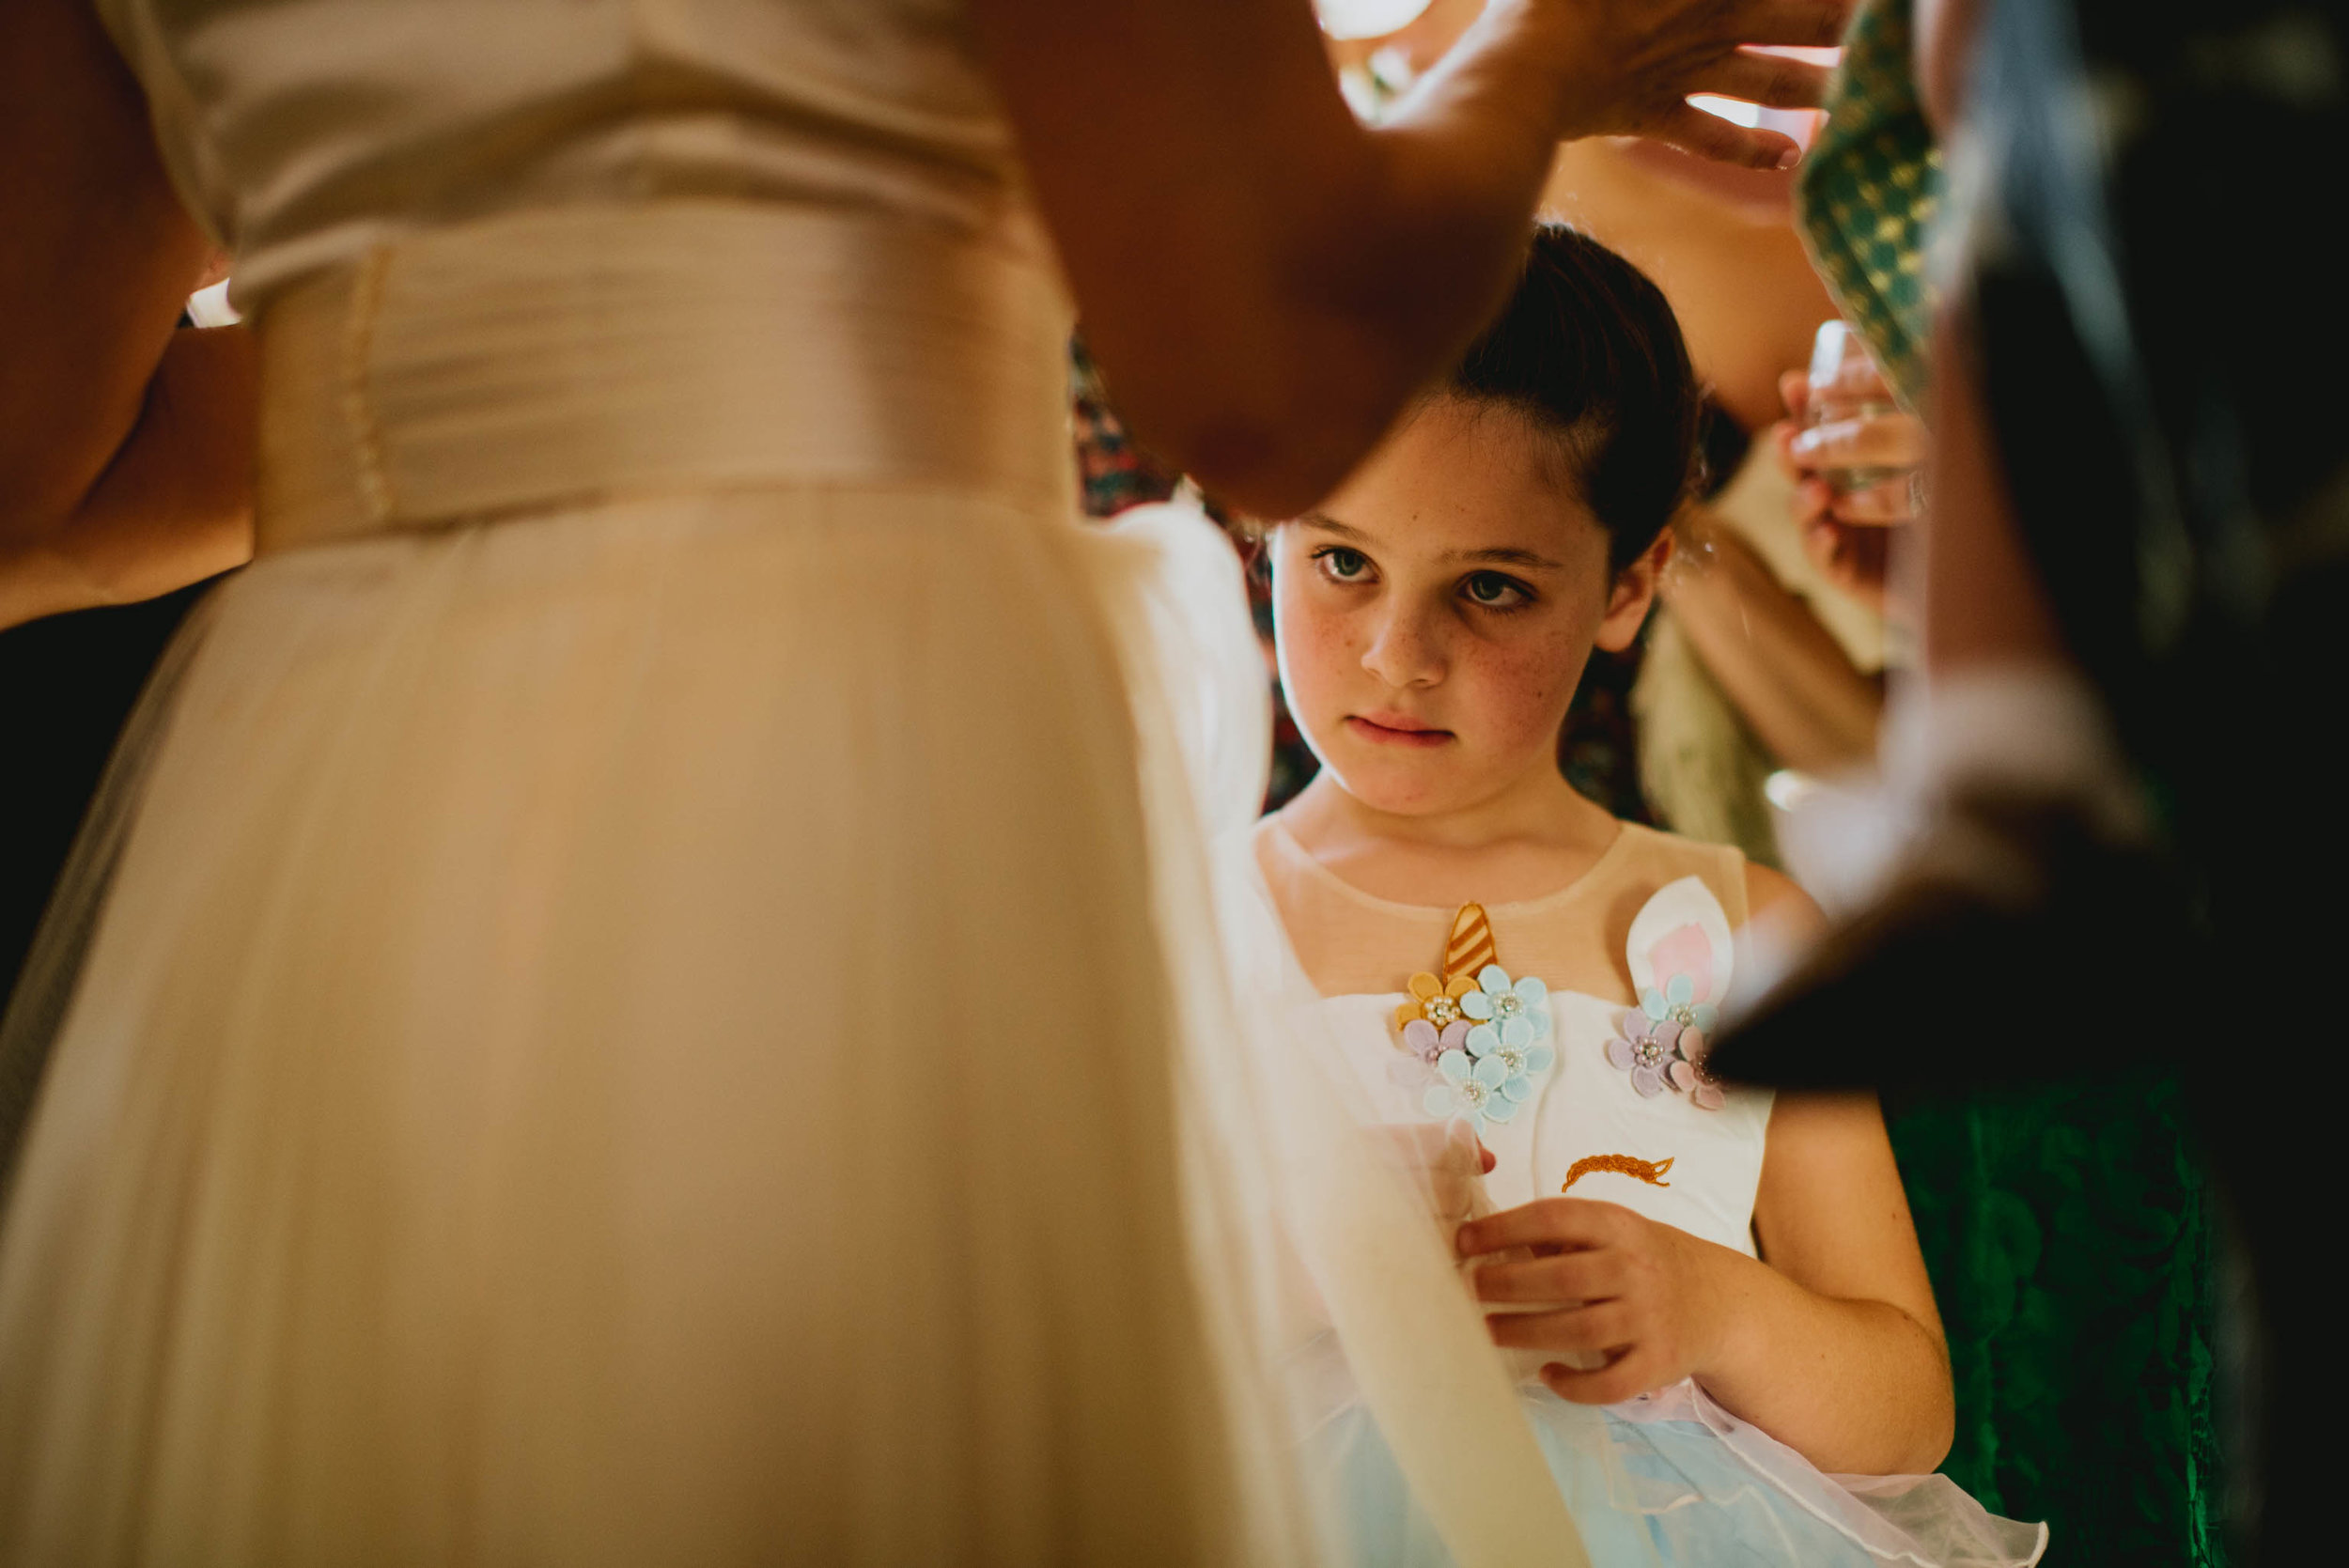 flower girl staring intently at the brides dress while the adults carry on conversation